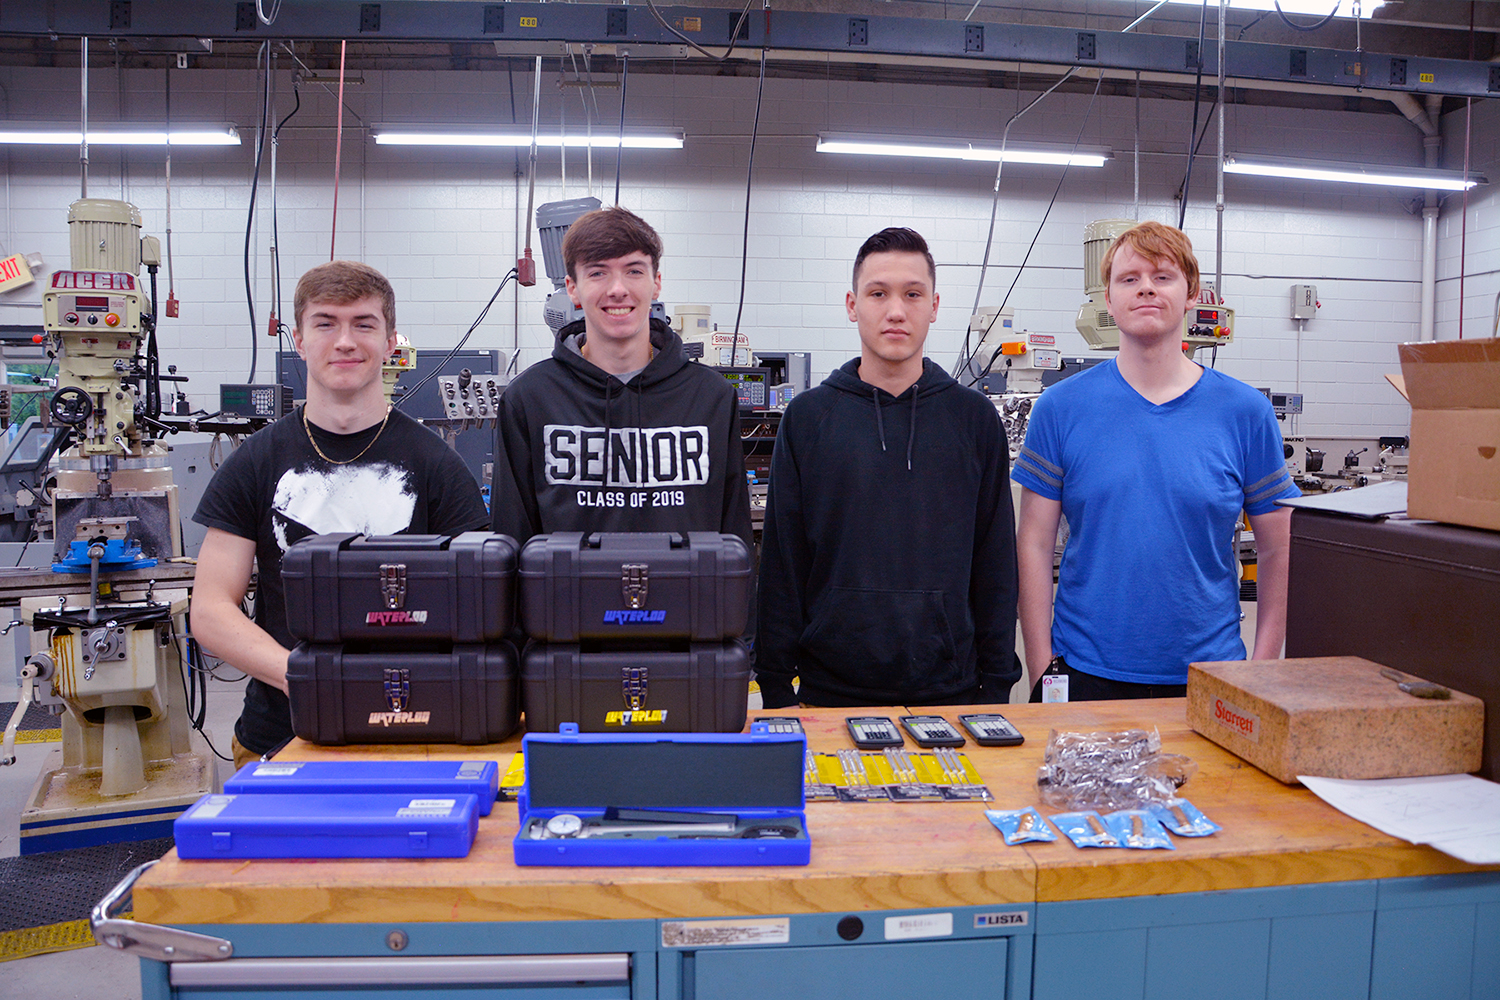 High school students stand with the tool box and tools they received in the machining program.